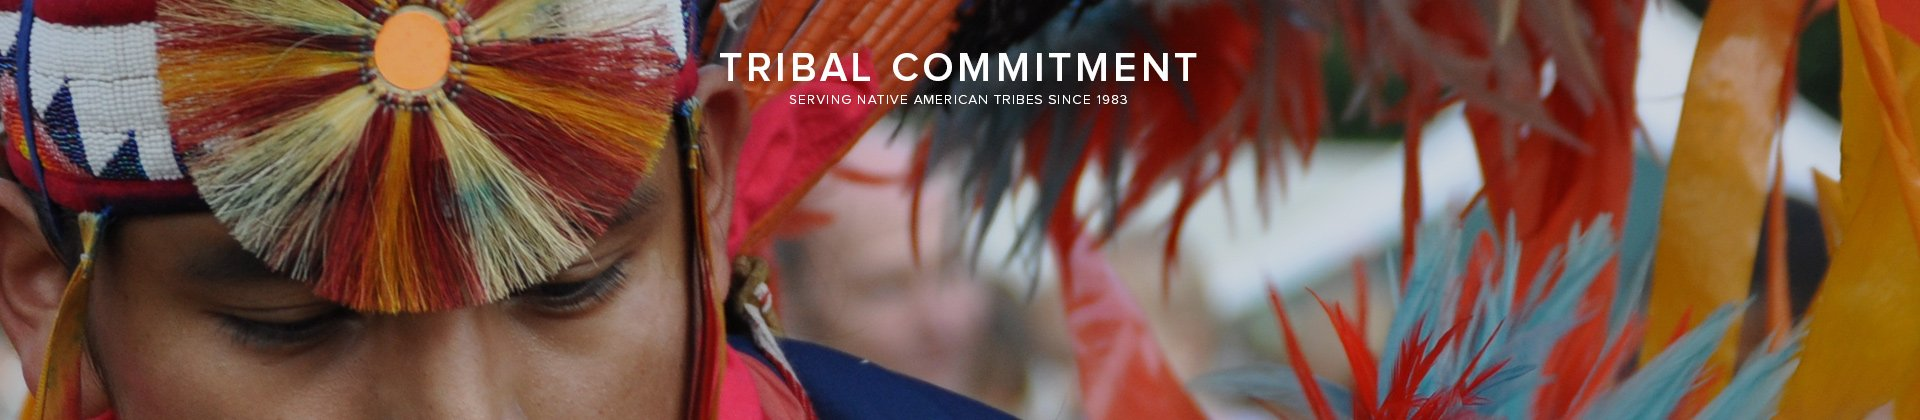 Tribal Commitment